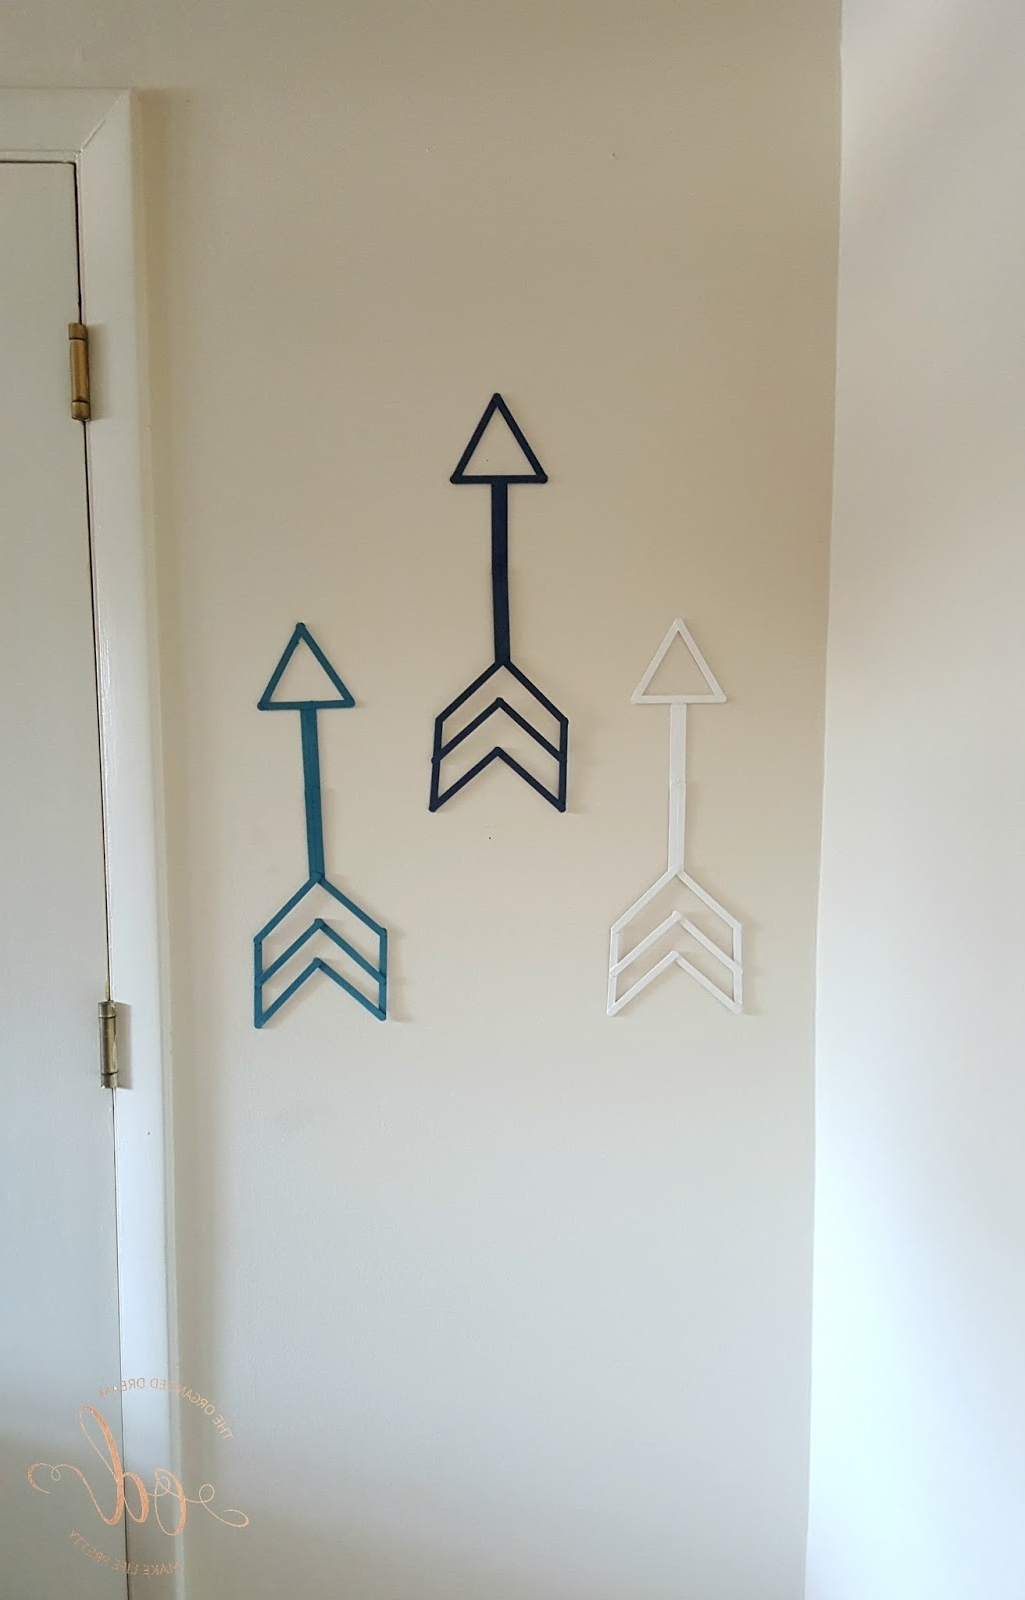 Diy Arrow Wall Art – The Organized Dream For Well Known Arrow Wall Art (View 10 of 20)